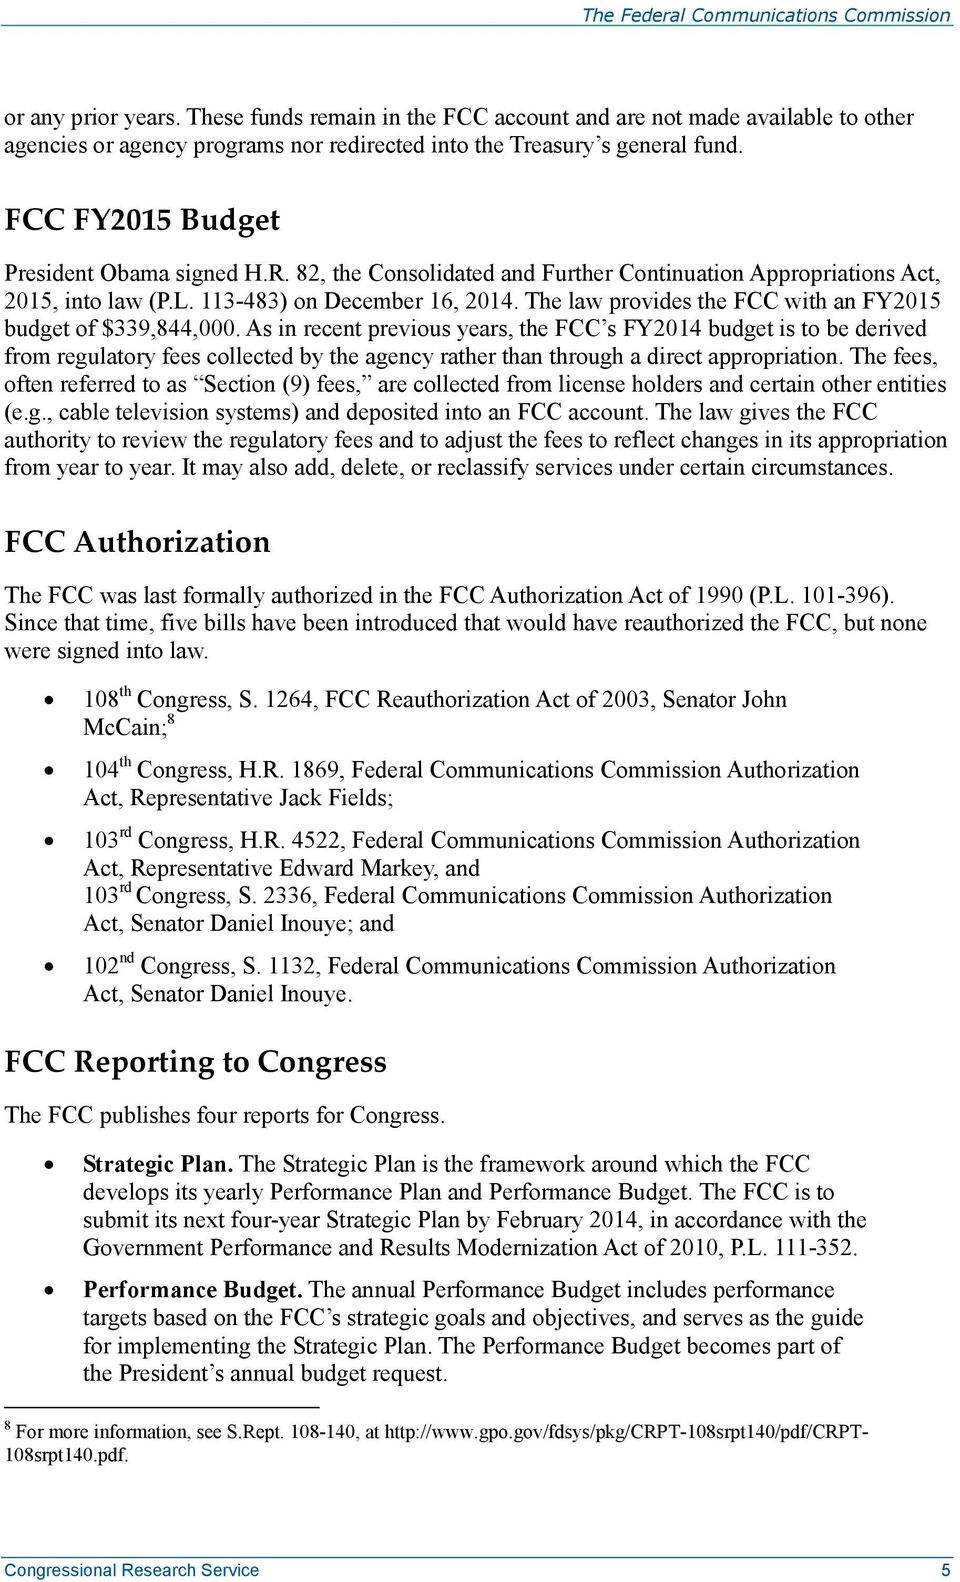 The law provides the FCC with an FY2015 budget of $339,844,000.